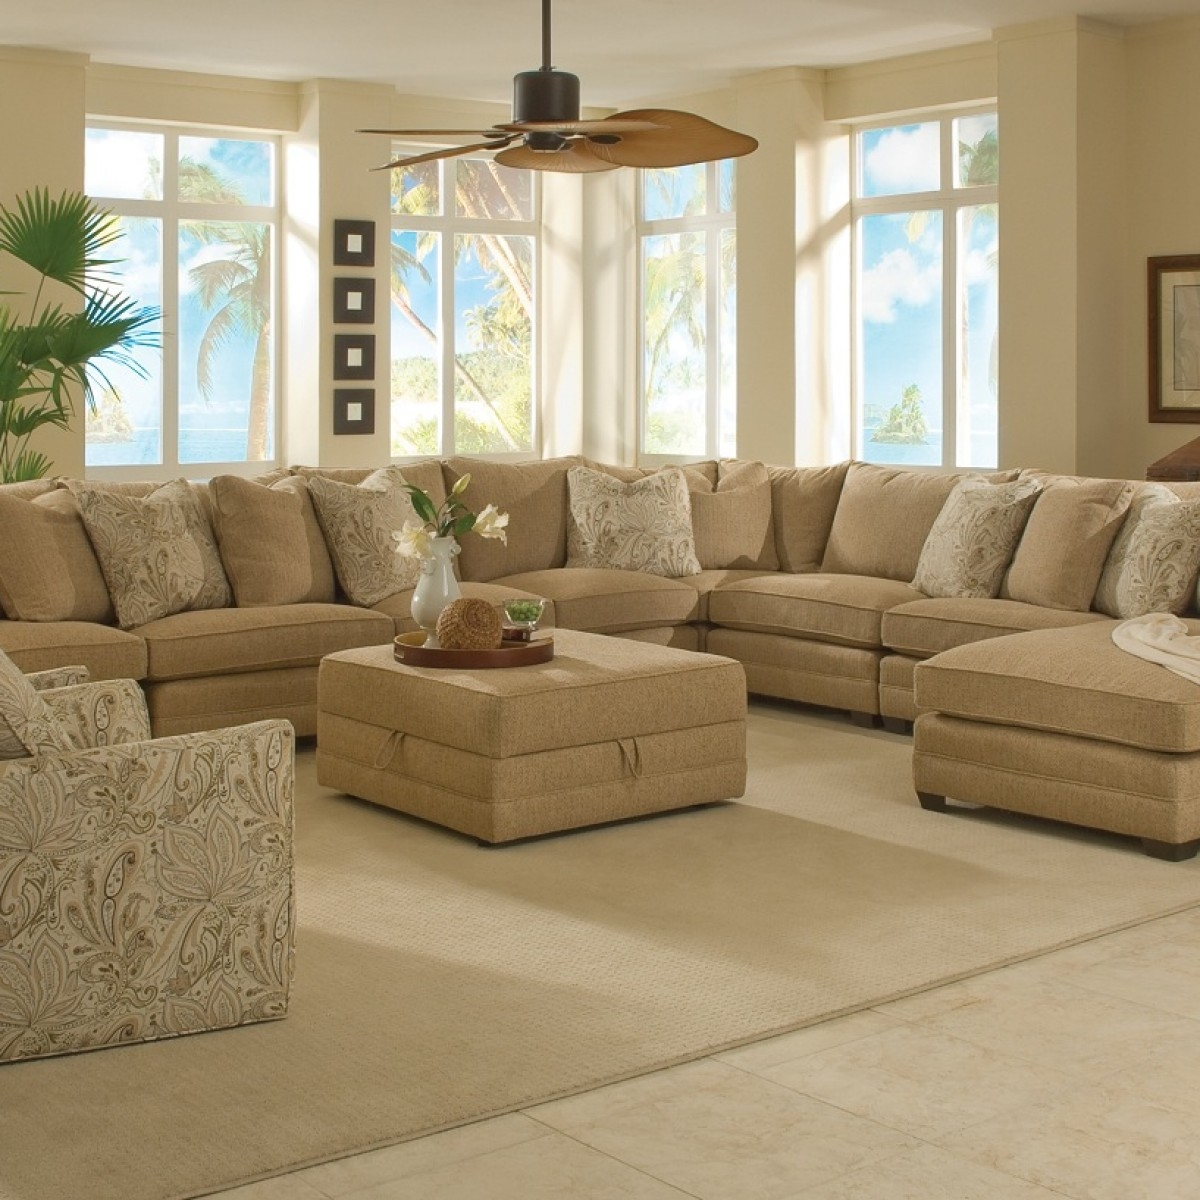 Big Sofas Sectionals Cleanupflorida For Big Sofas Sectionals (#2 of 12)